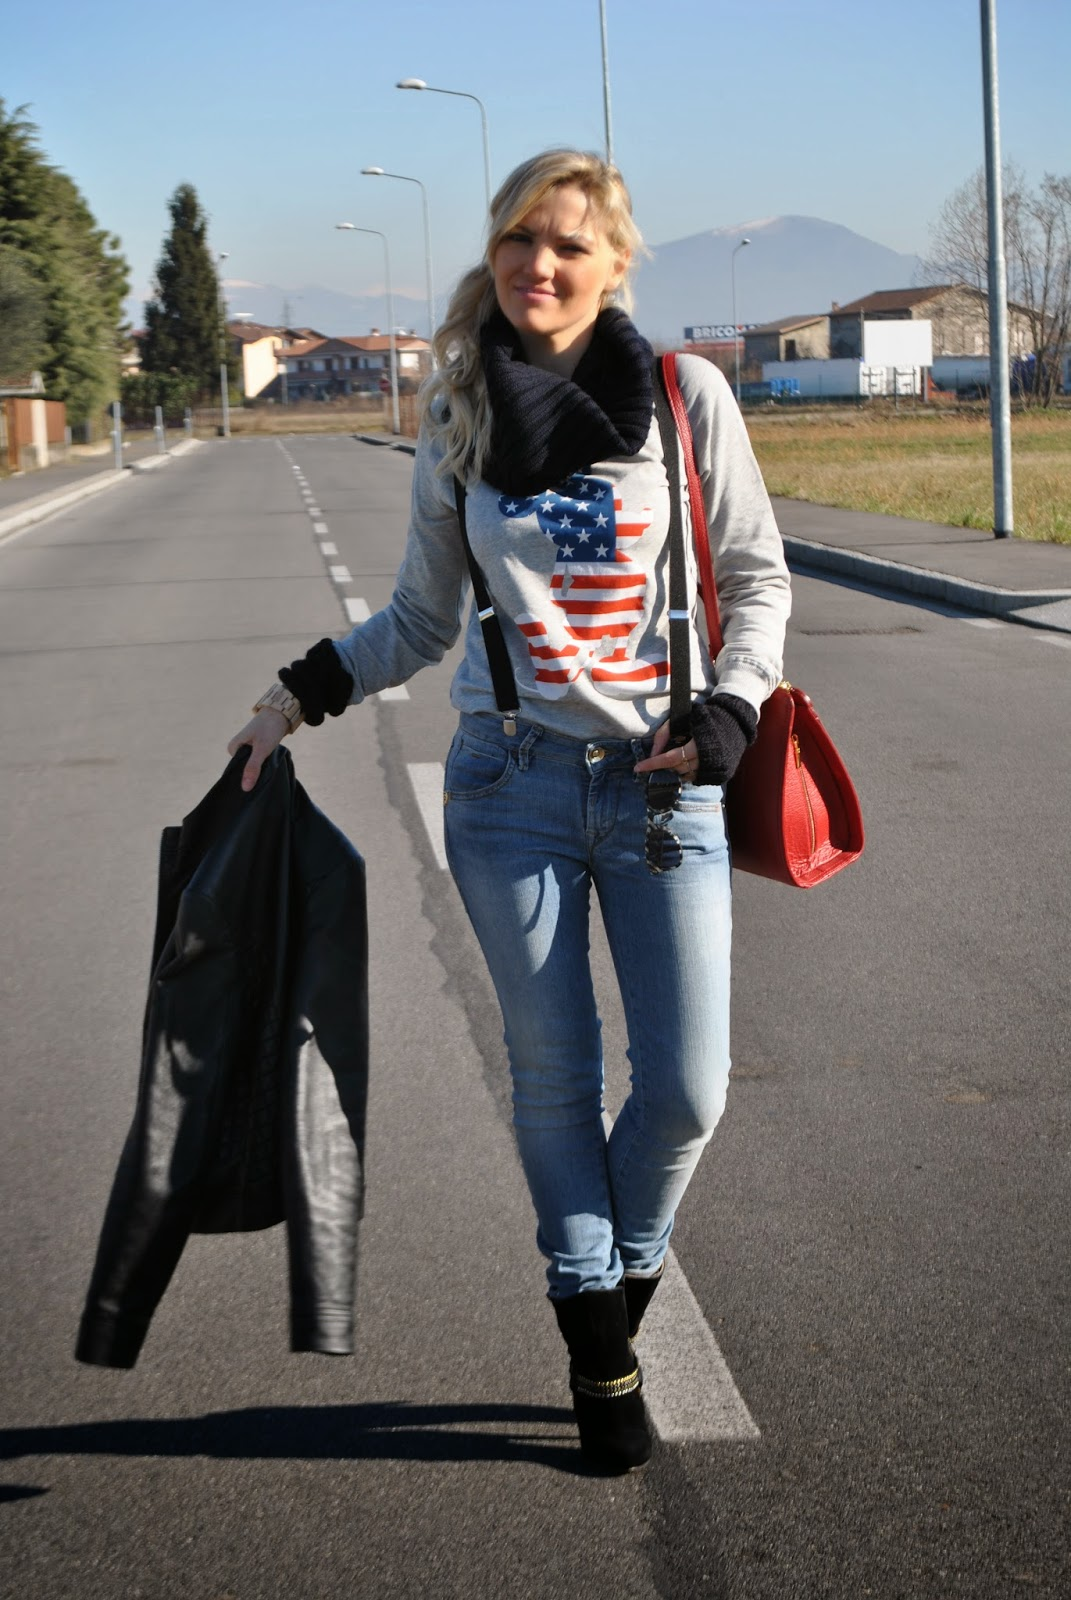 outfit jeans tacchi e giacca nera di pelle outfit felpa mickey mouse felpa topolino felpa mango jeans fornarina outfit jeans skinny outfit borsa rossa abbinamenti borsa rossa outfit jeans e tacchi come abbinare jeans e tacchi outfit invernali outfit febbraio 2015 outfit casual invernali mariafelicia magno colorblock by felym mariafelicia magno fashion blogger come abbinare la giacca in pelle nera abbinamenti felpa outfit scalda collo outfit borsa rossa outfit stivali buffalo orologio gufo italy orologio in legno winter outfits sweatshirt outfit how to wear sweatshirt skinny jeans how to wear skinny jeans how to wear red bag outfit red bag skinny jeans outfit red bag outfit mango sweatshirt mickey mouse sweatshirt buffalo boots how to wear jeans and heels casual winter outfits fashion bloggers italy italian fashion bloggers blonde hair blonde girls